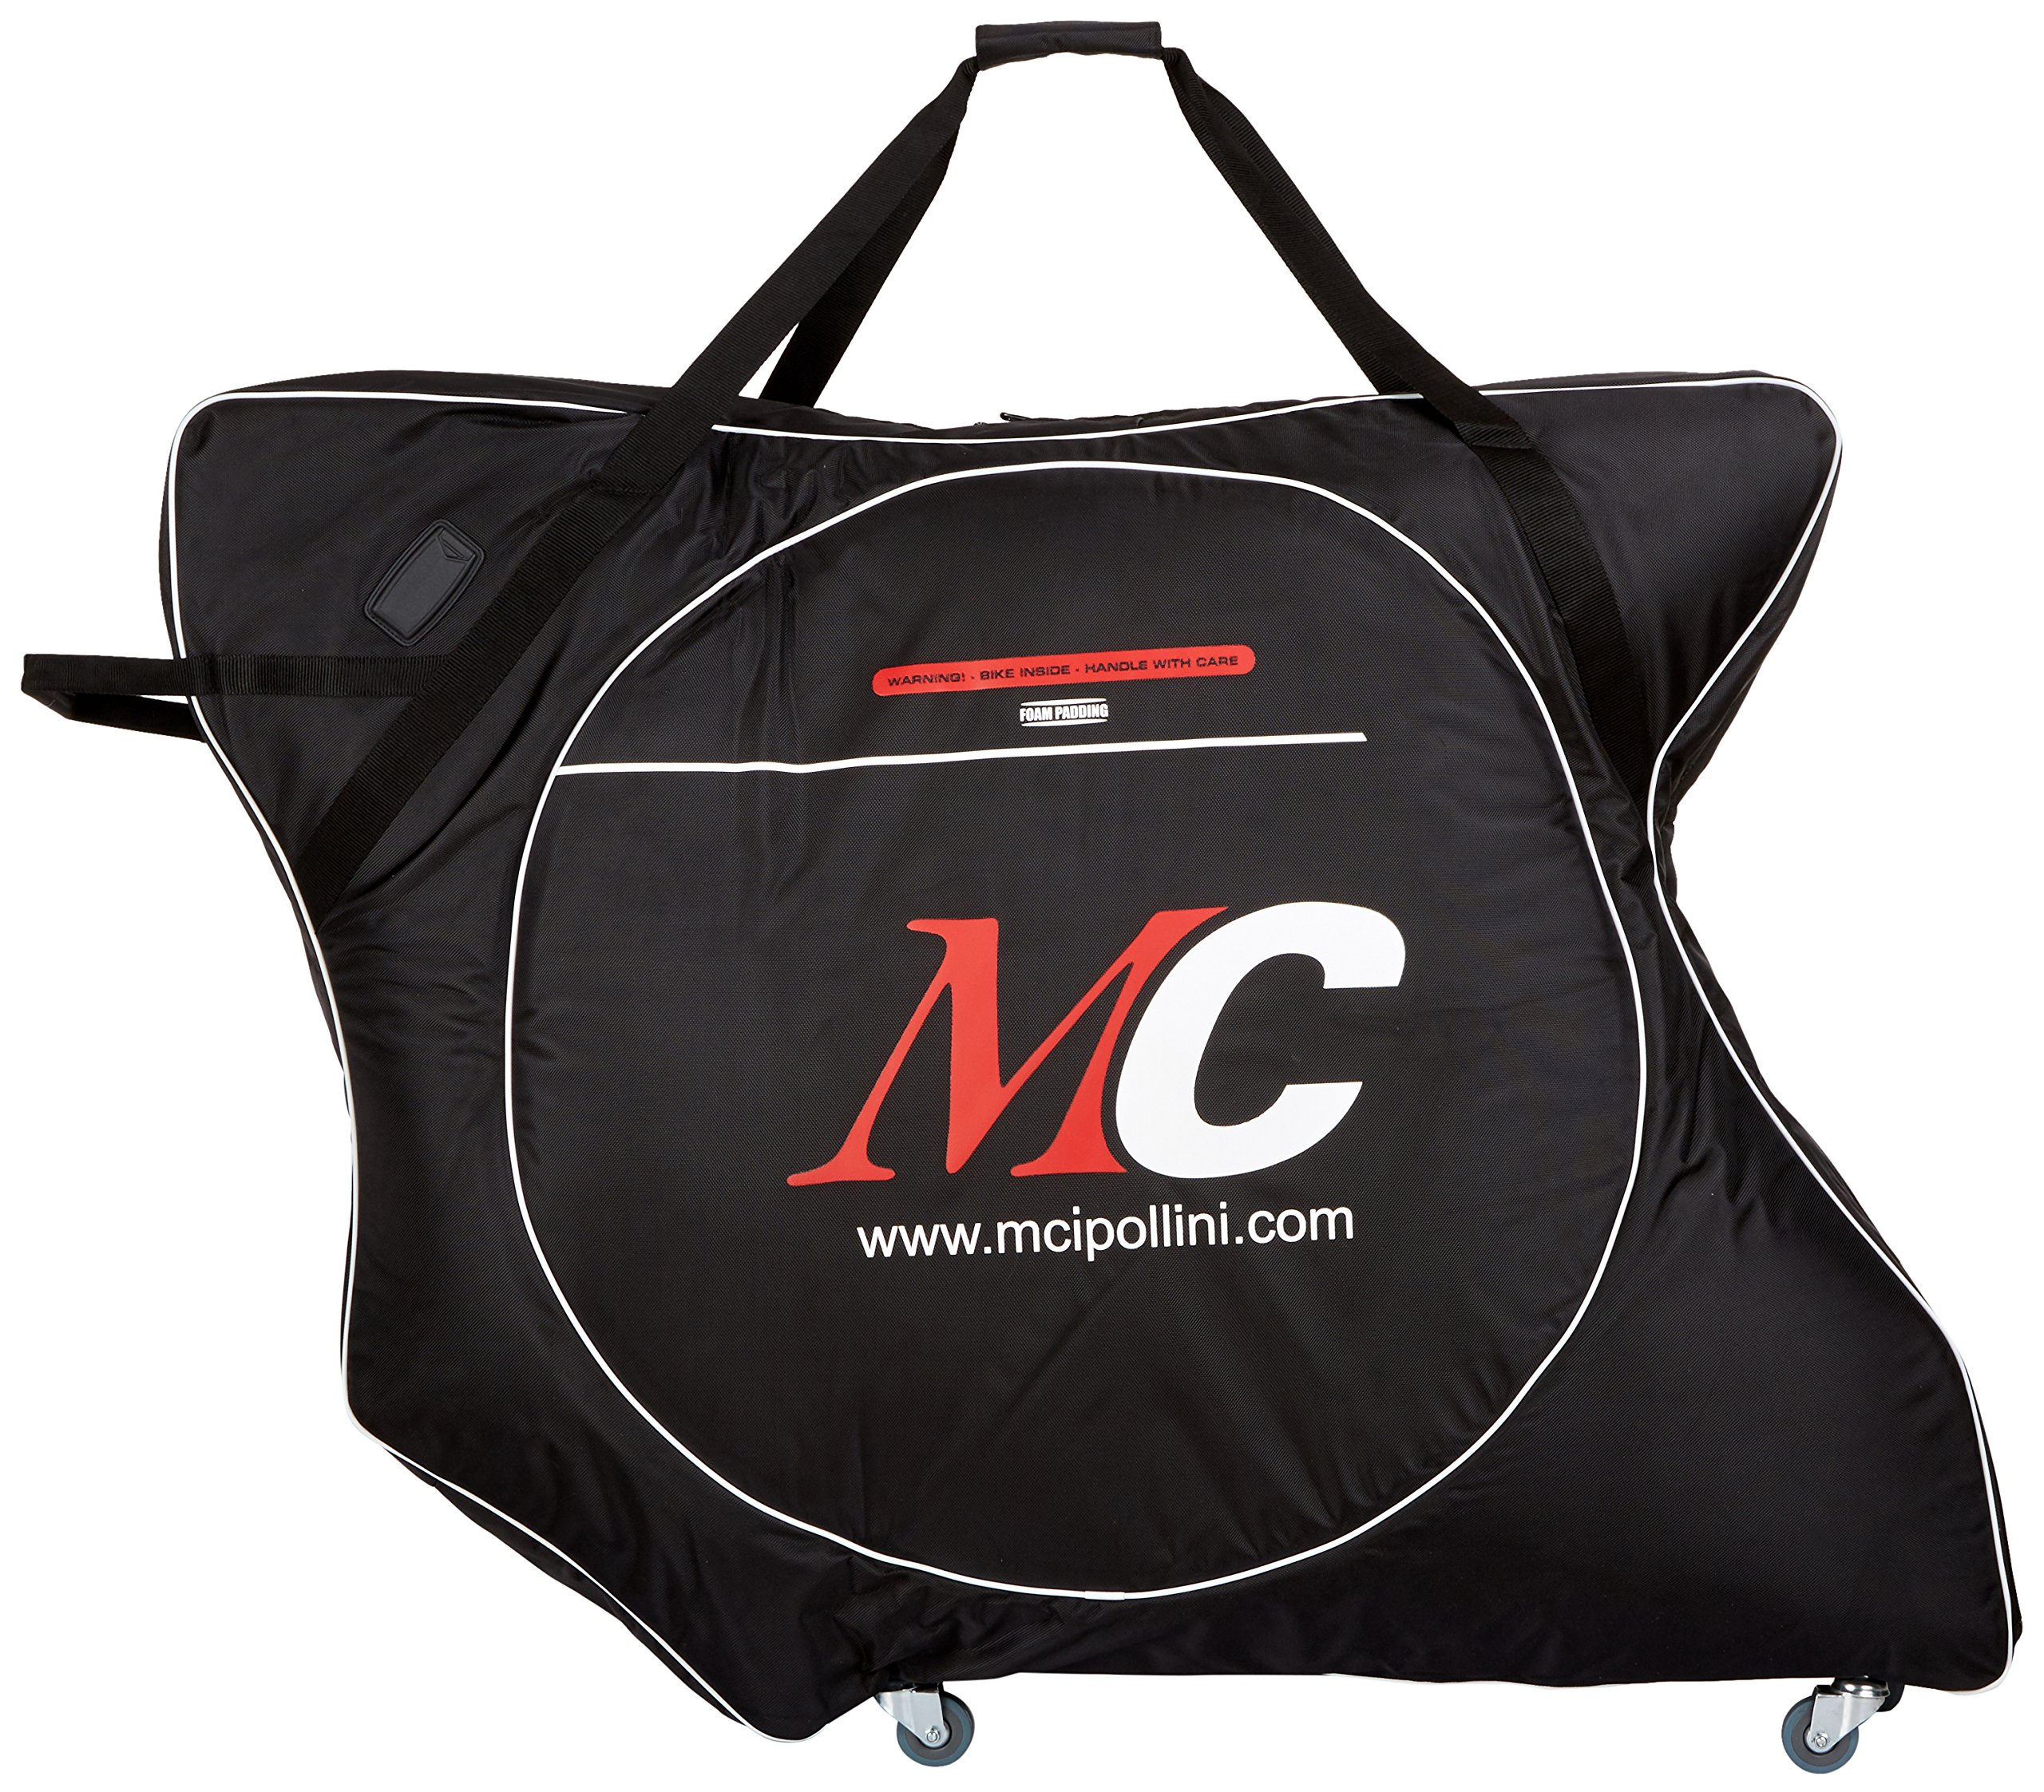 Cipollini MC Bike Bag